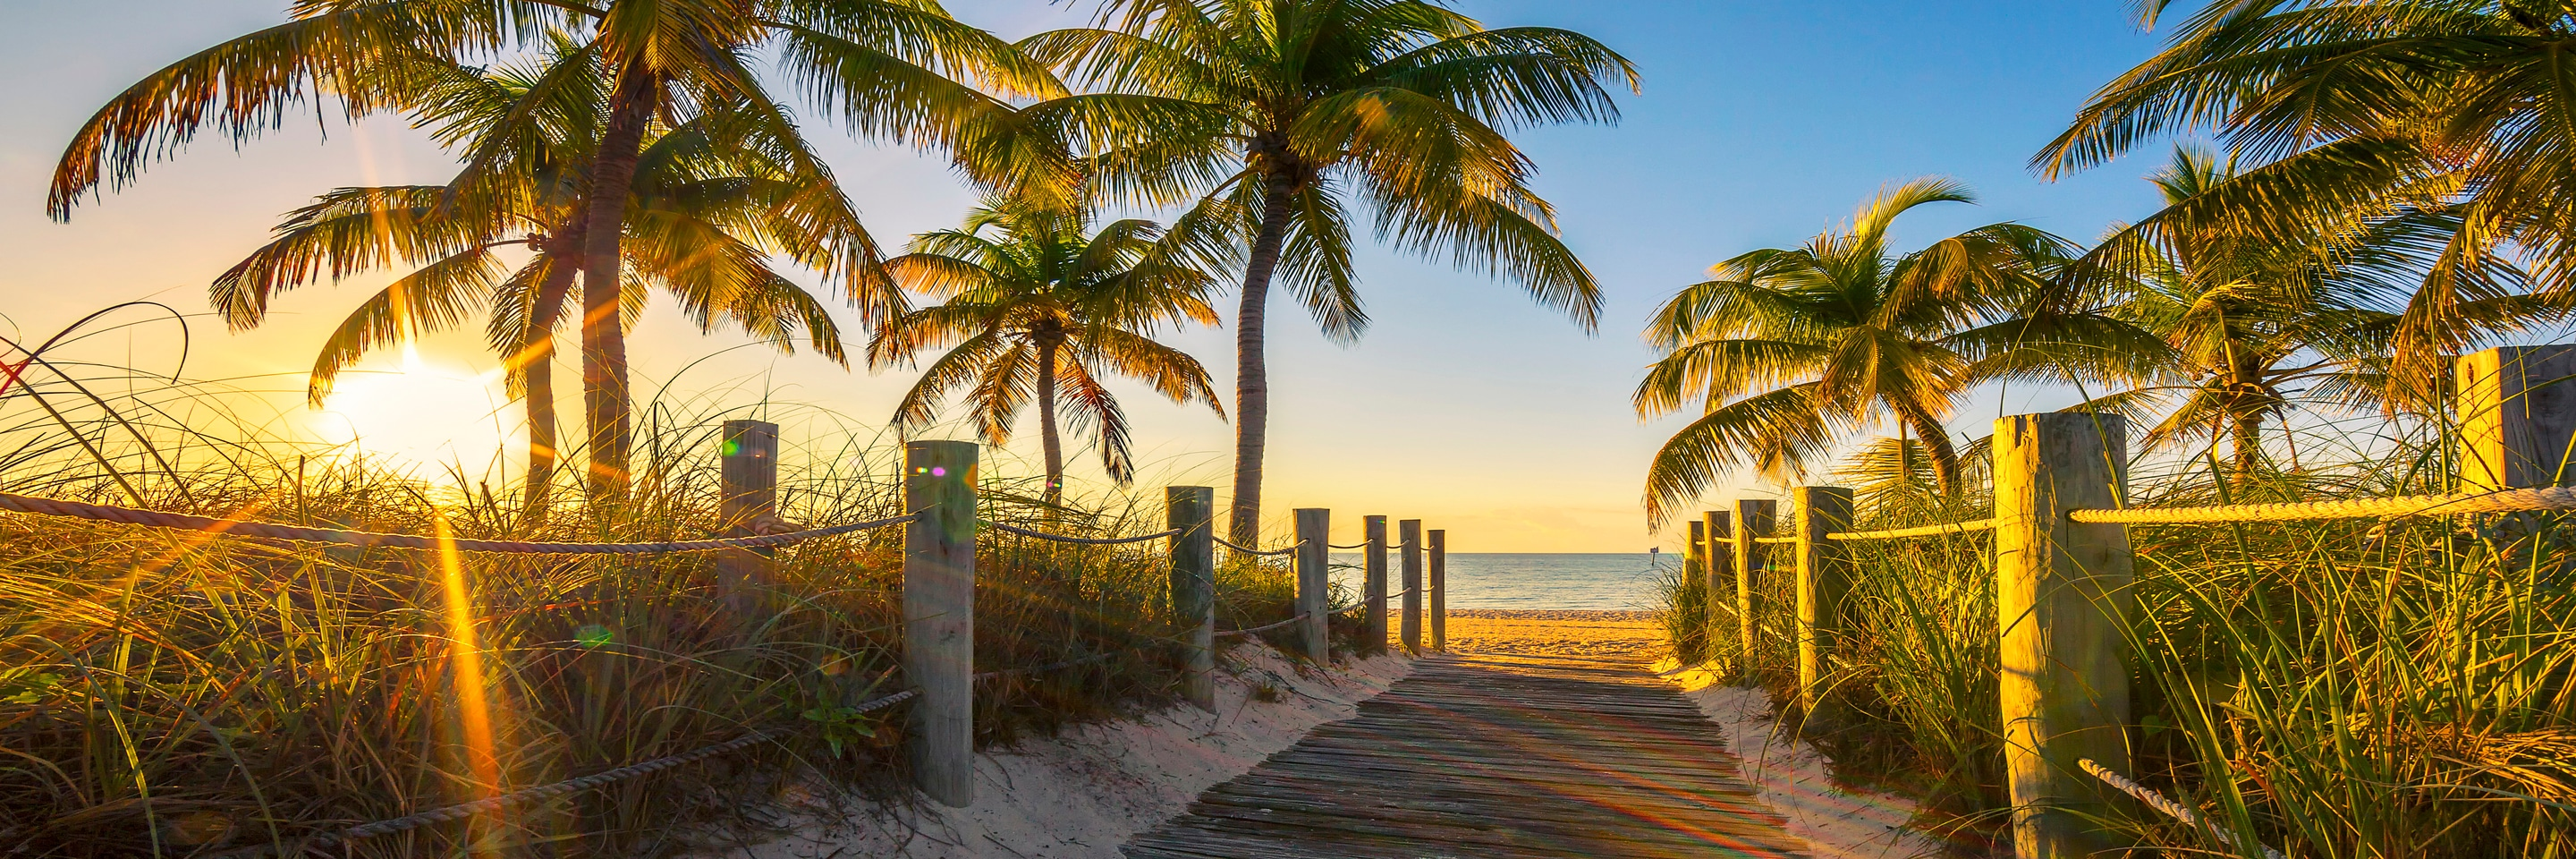 Sunrise over a wooden walkway to the beach at Key West, Florida.